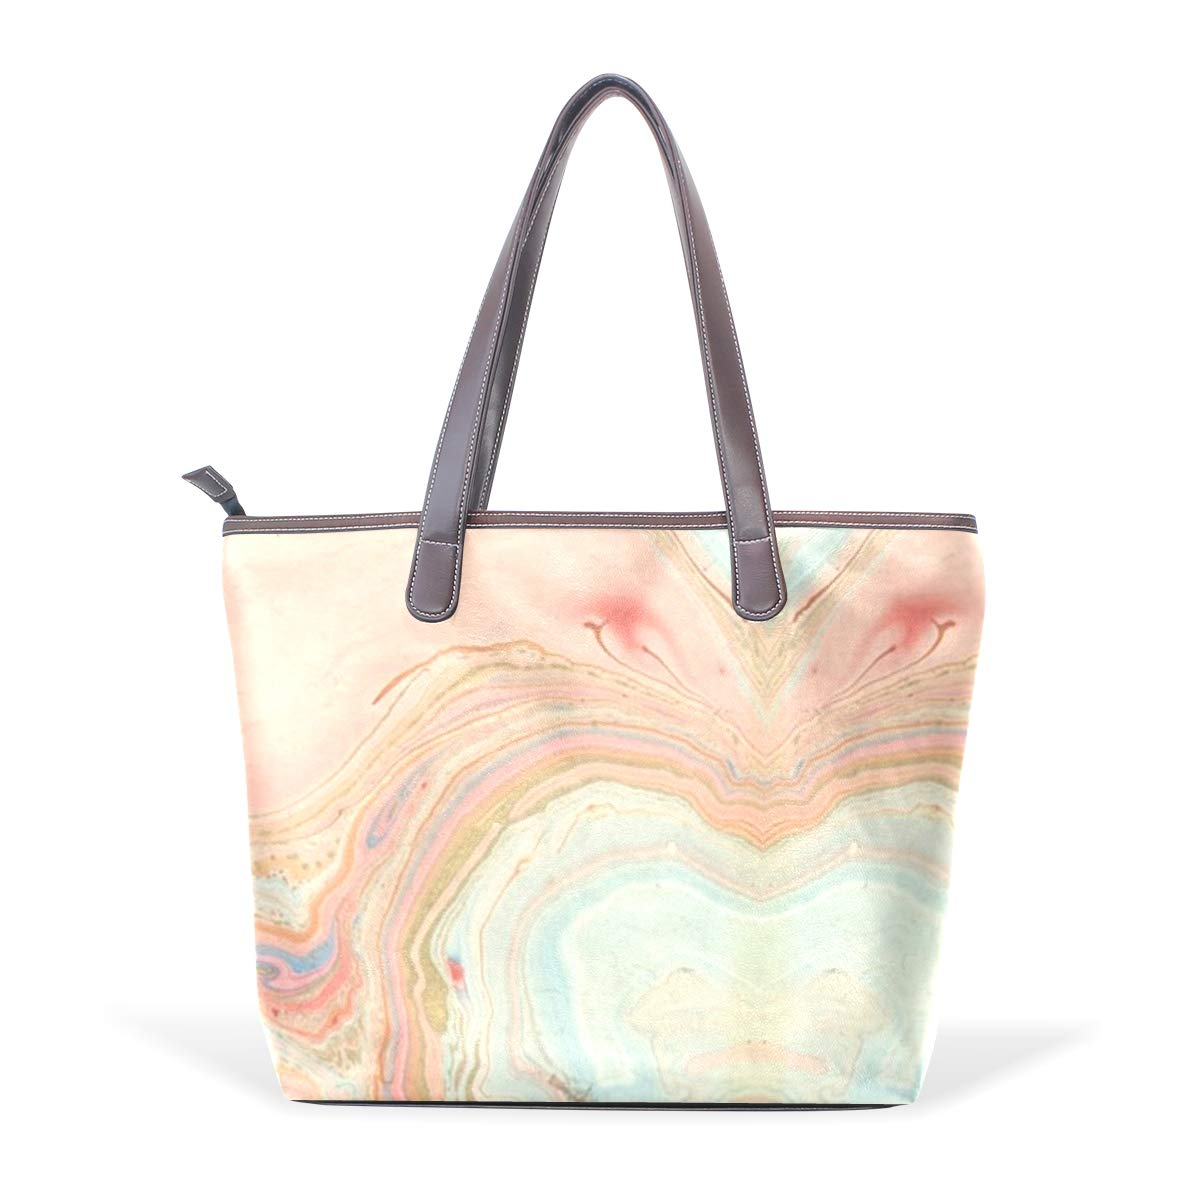 Peach Marble SwirlWomens Vintage Leather Tote Urban Style Satchel Tote